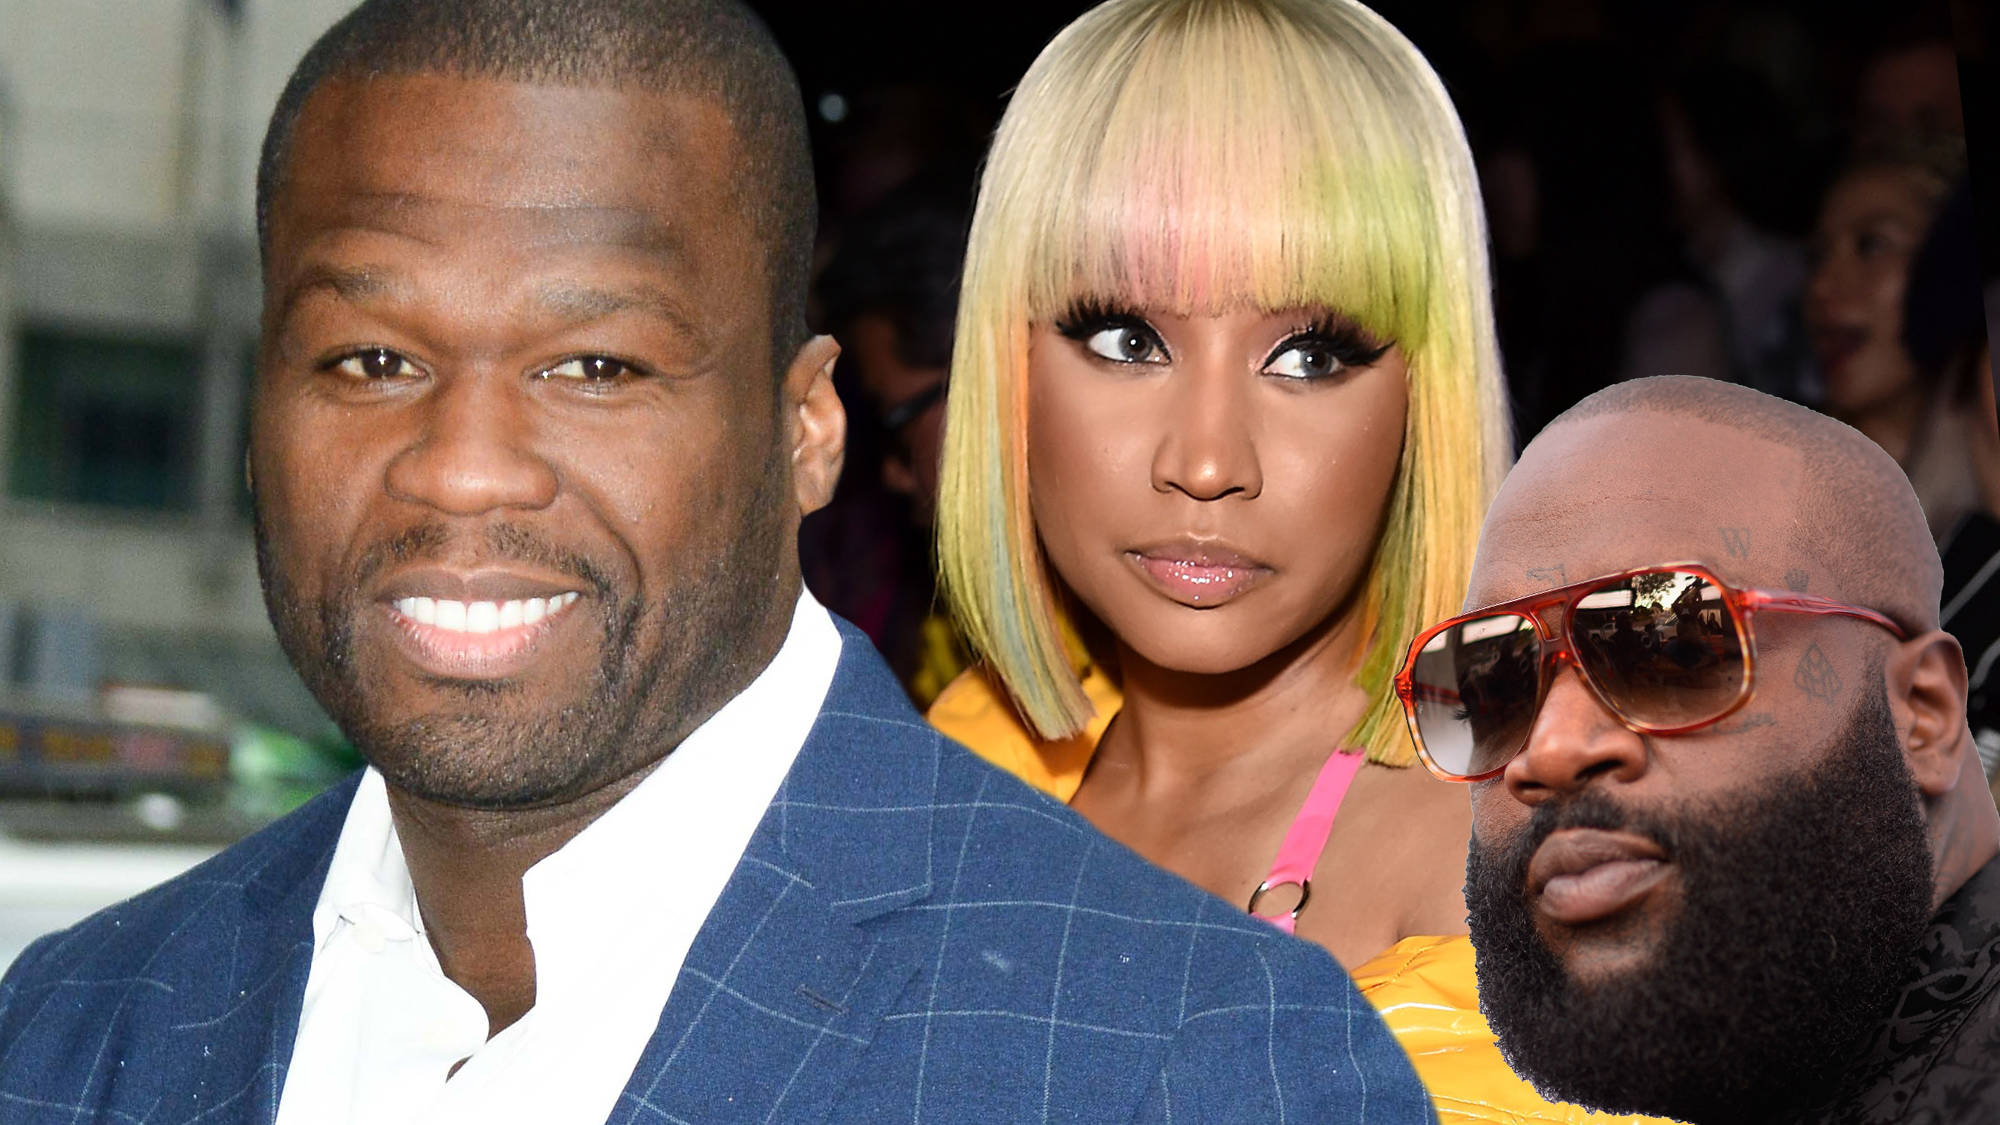 50 Cent Trolls Rick Ross After Nicki Minaj Slammed Him For His 'Apple Of My Eye' Diss